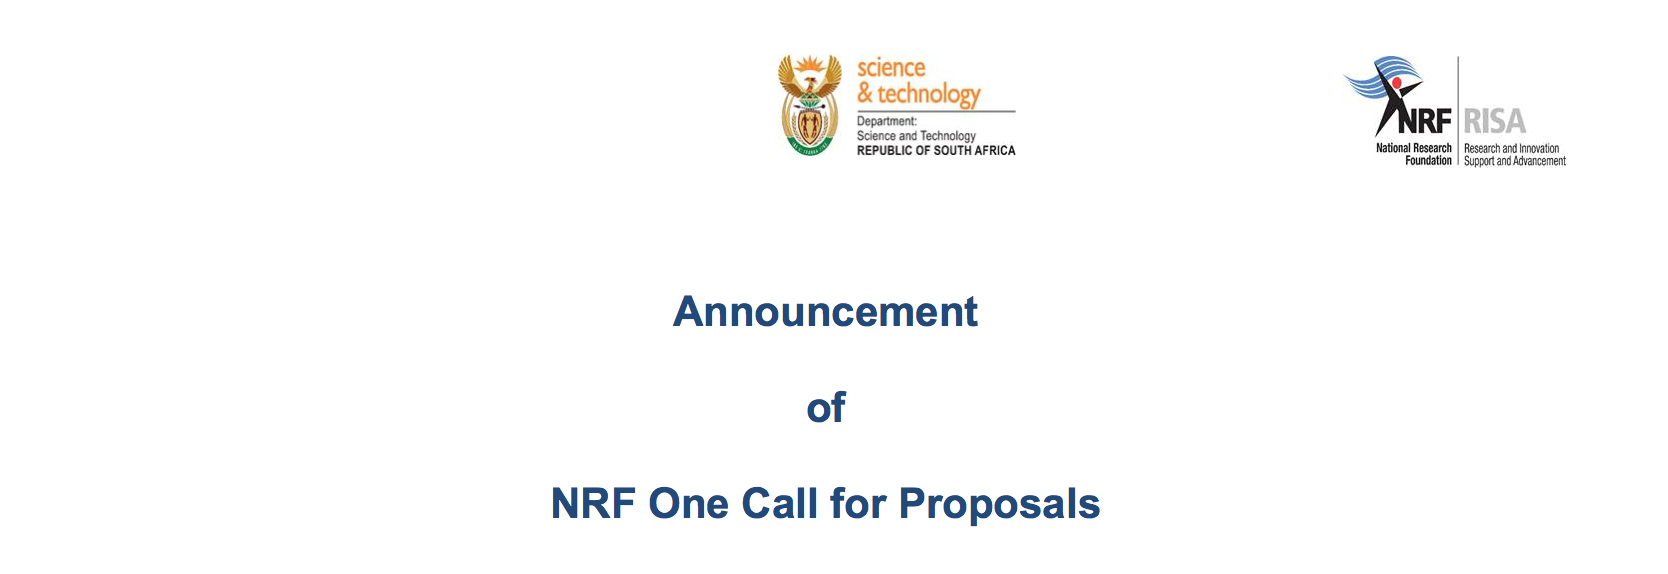 Announcement of NRF One Call for Proposals 2020/2021